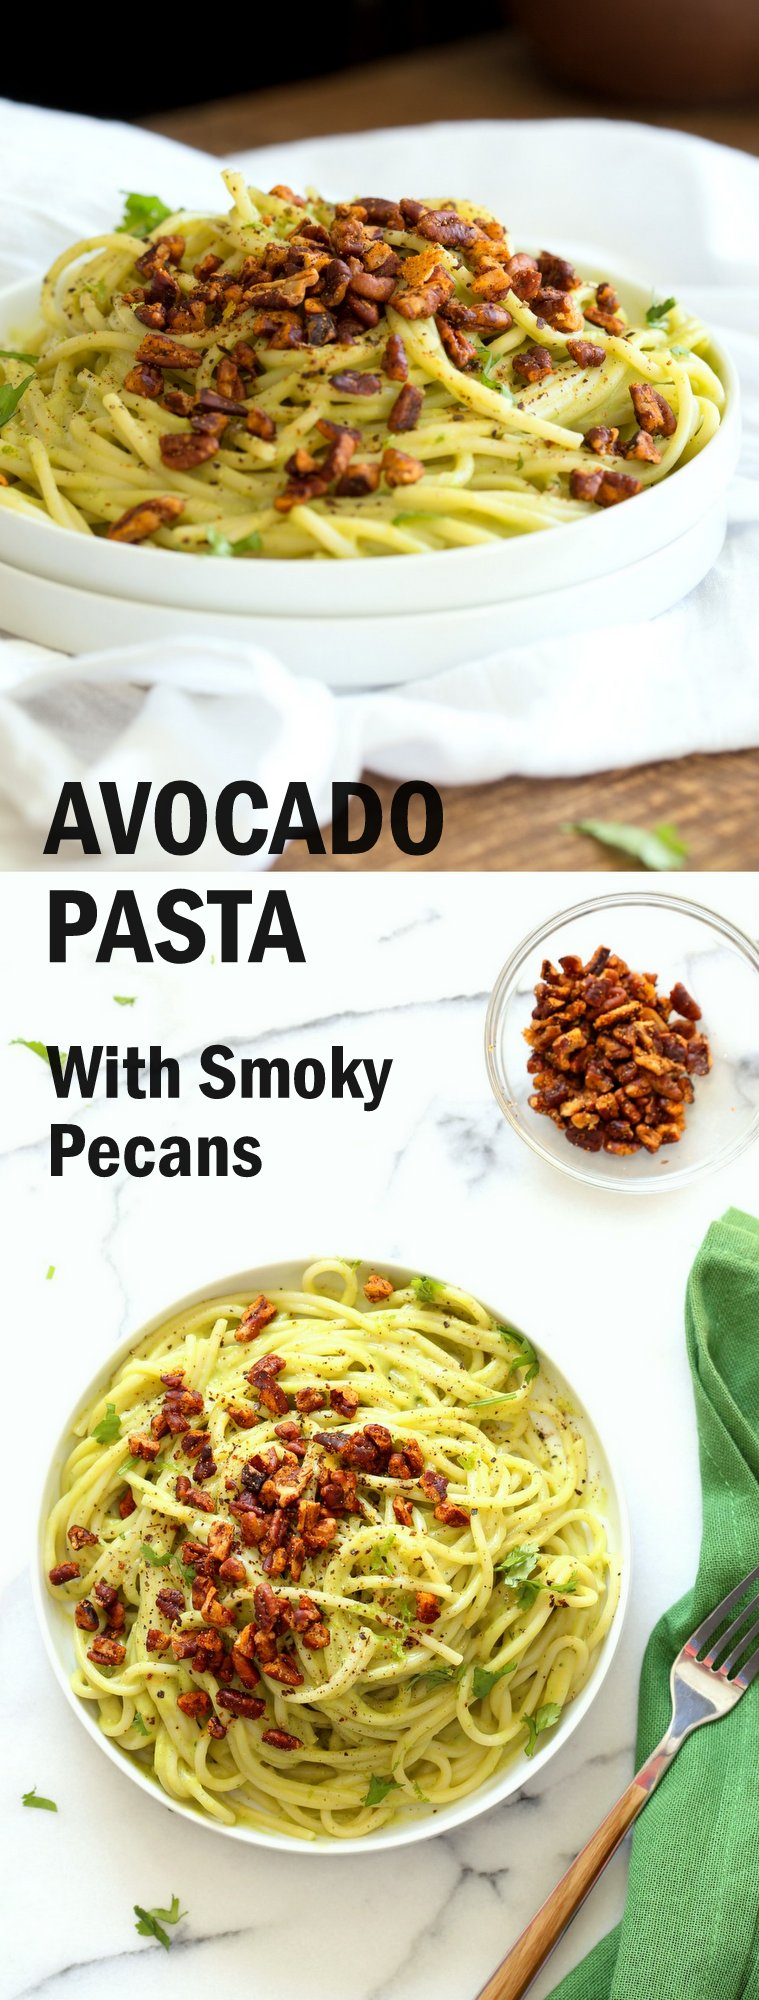 Vegan Avocado Pasta with Smoky Pecans. This 20 Minute Creamy Avocado Basil Sauce is great over spaghetti or zoodles. Serve with smoky spicy pecans for amazing flavor. #Vegan #Soyfree #Recipe. Can be #nutfree.#veganricha | VeganRicha.com